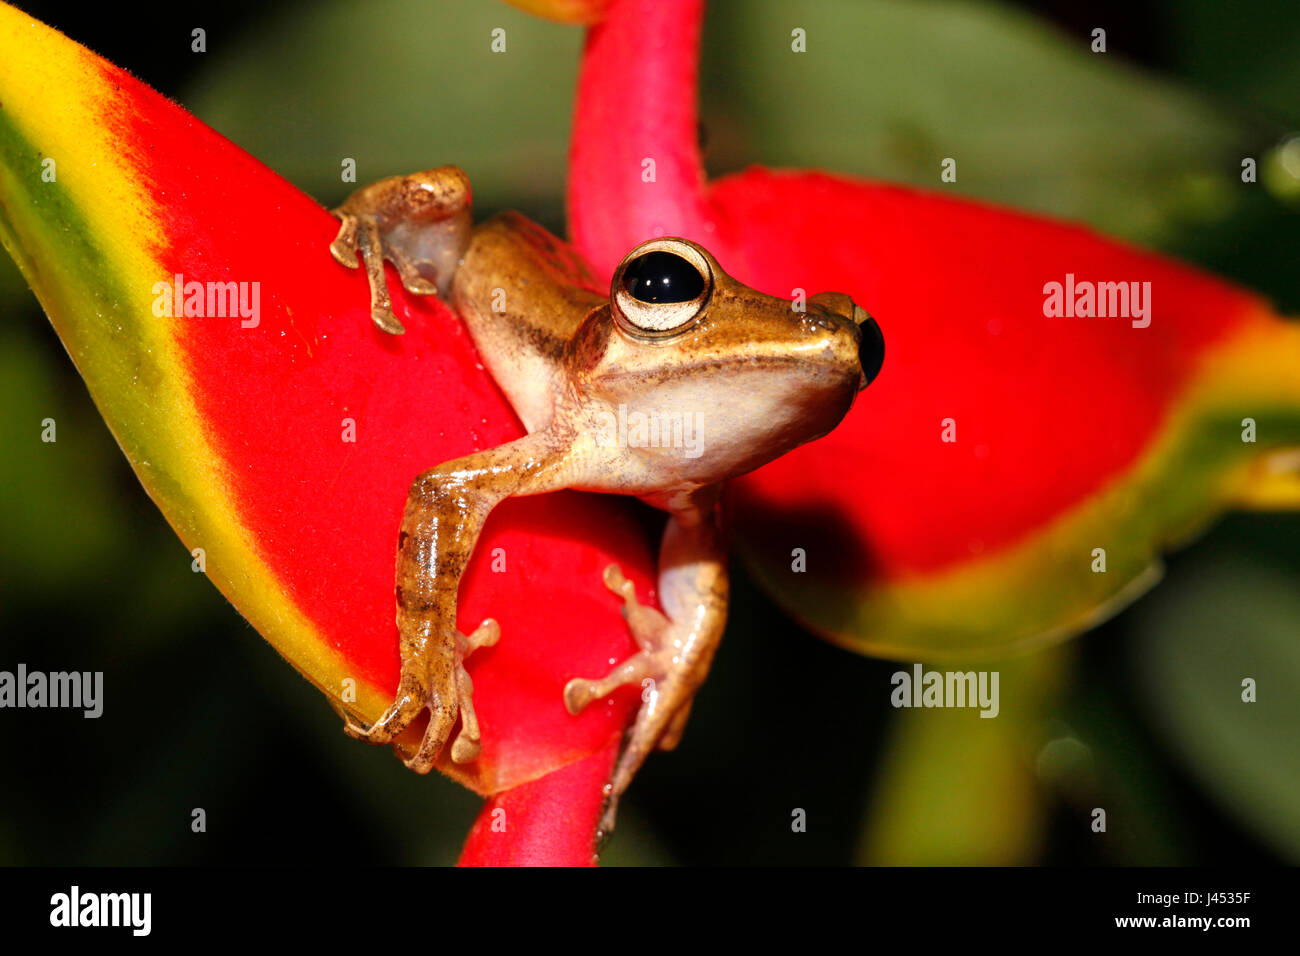 photo of a fourlined tree-frog on a Crab Claw Flower Stock Photo